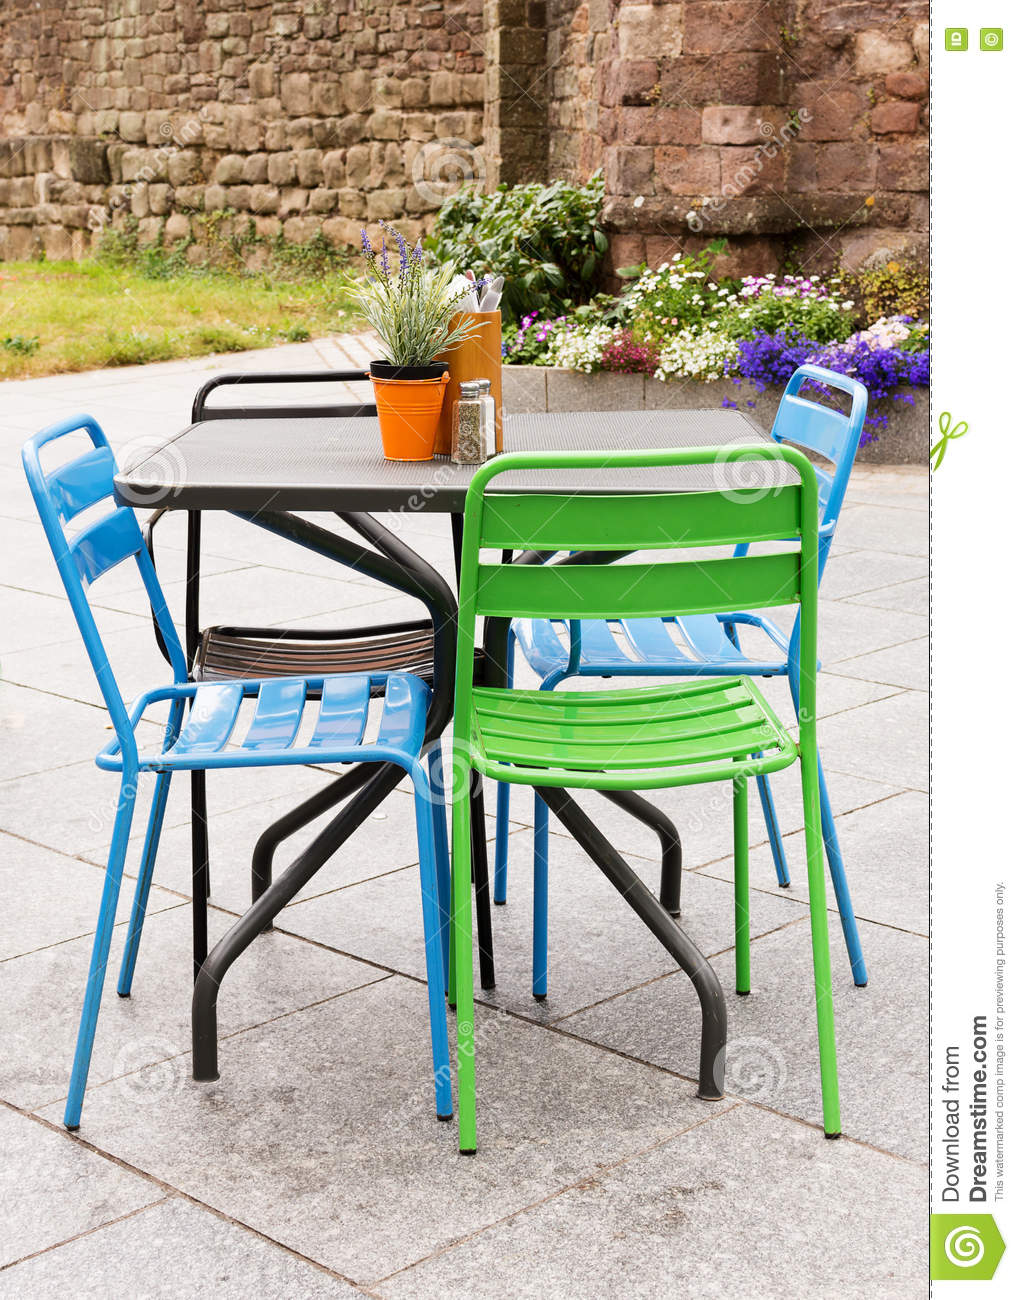 Garden Table And Chair On Patio Stock Image - Image of decor